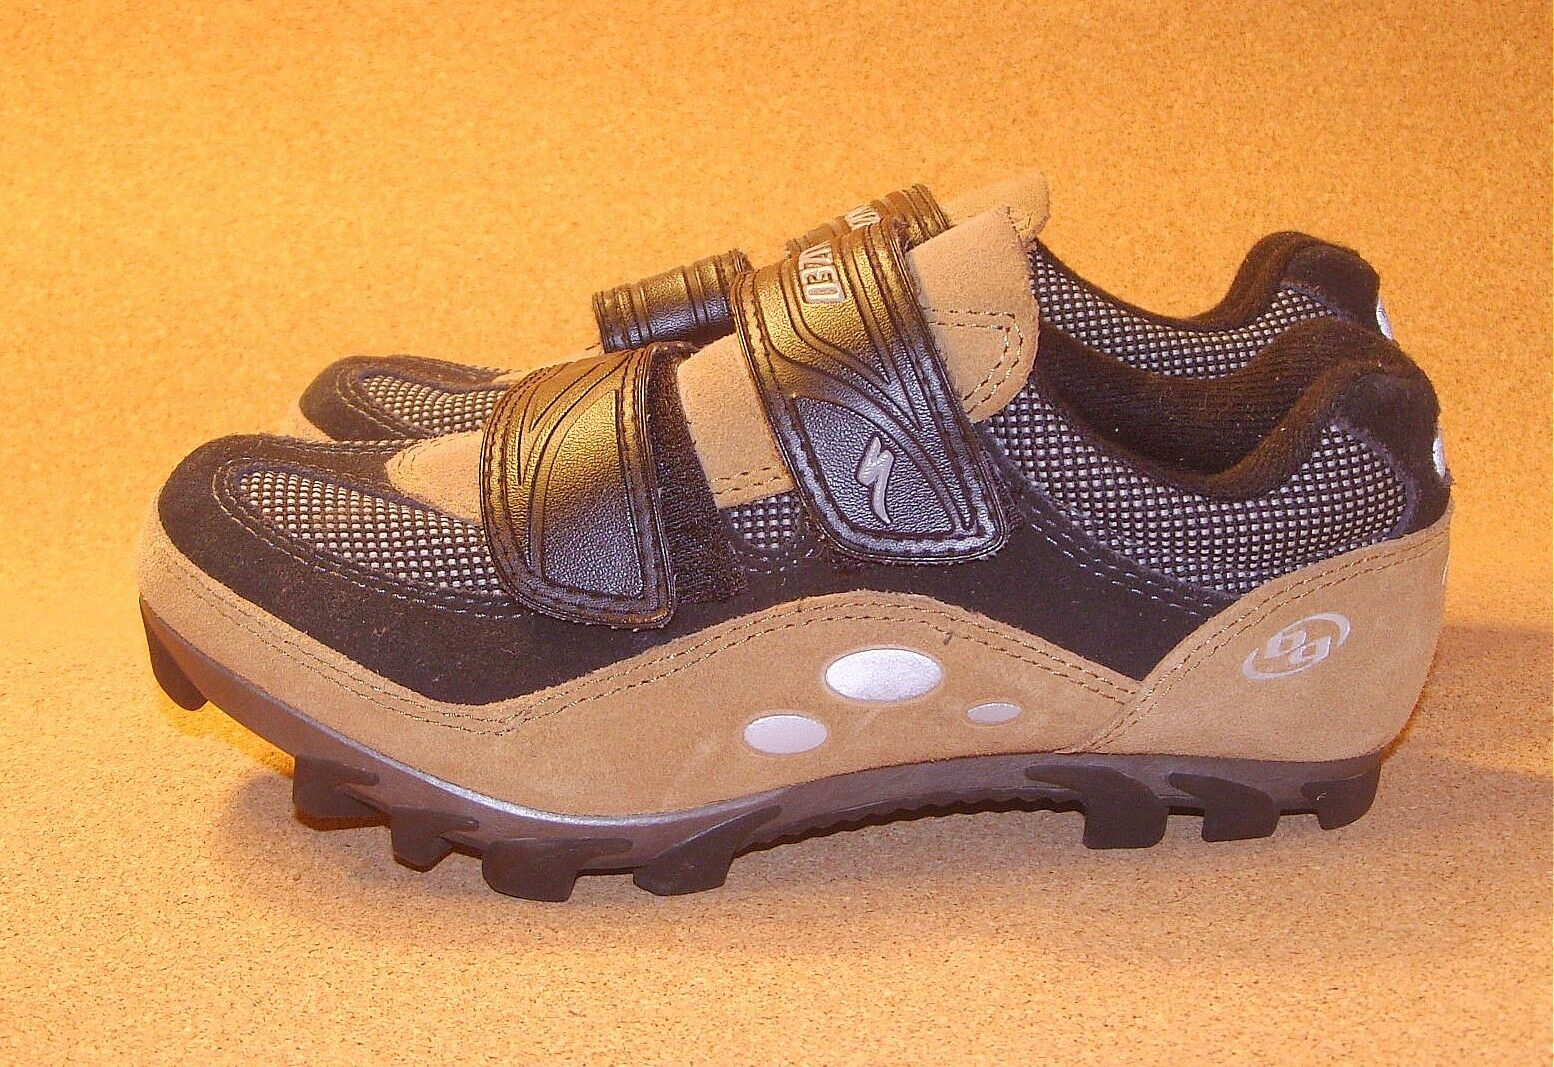 Womens SPECIALIZED Mountain Bike Cycling  shoes size 4.5 (36)